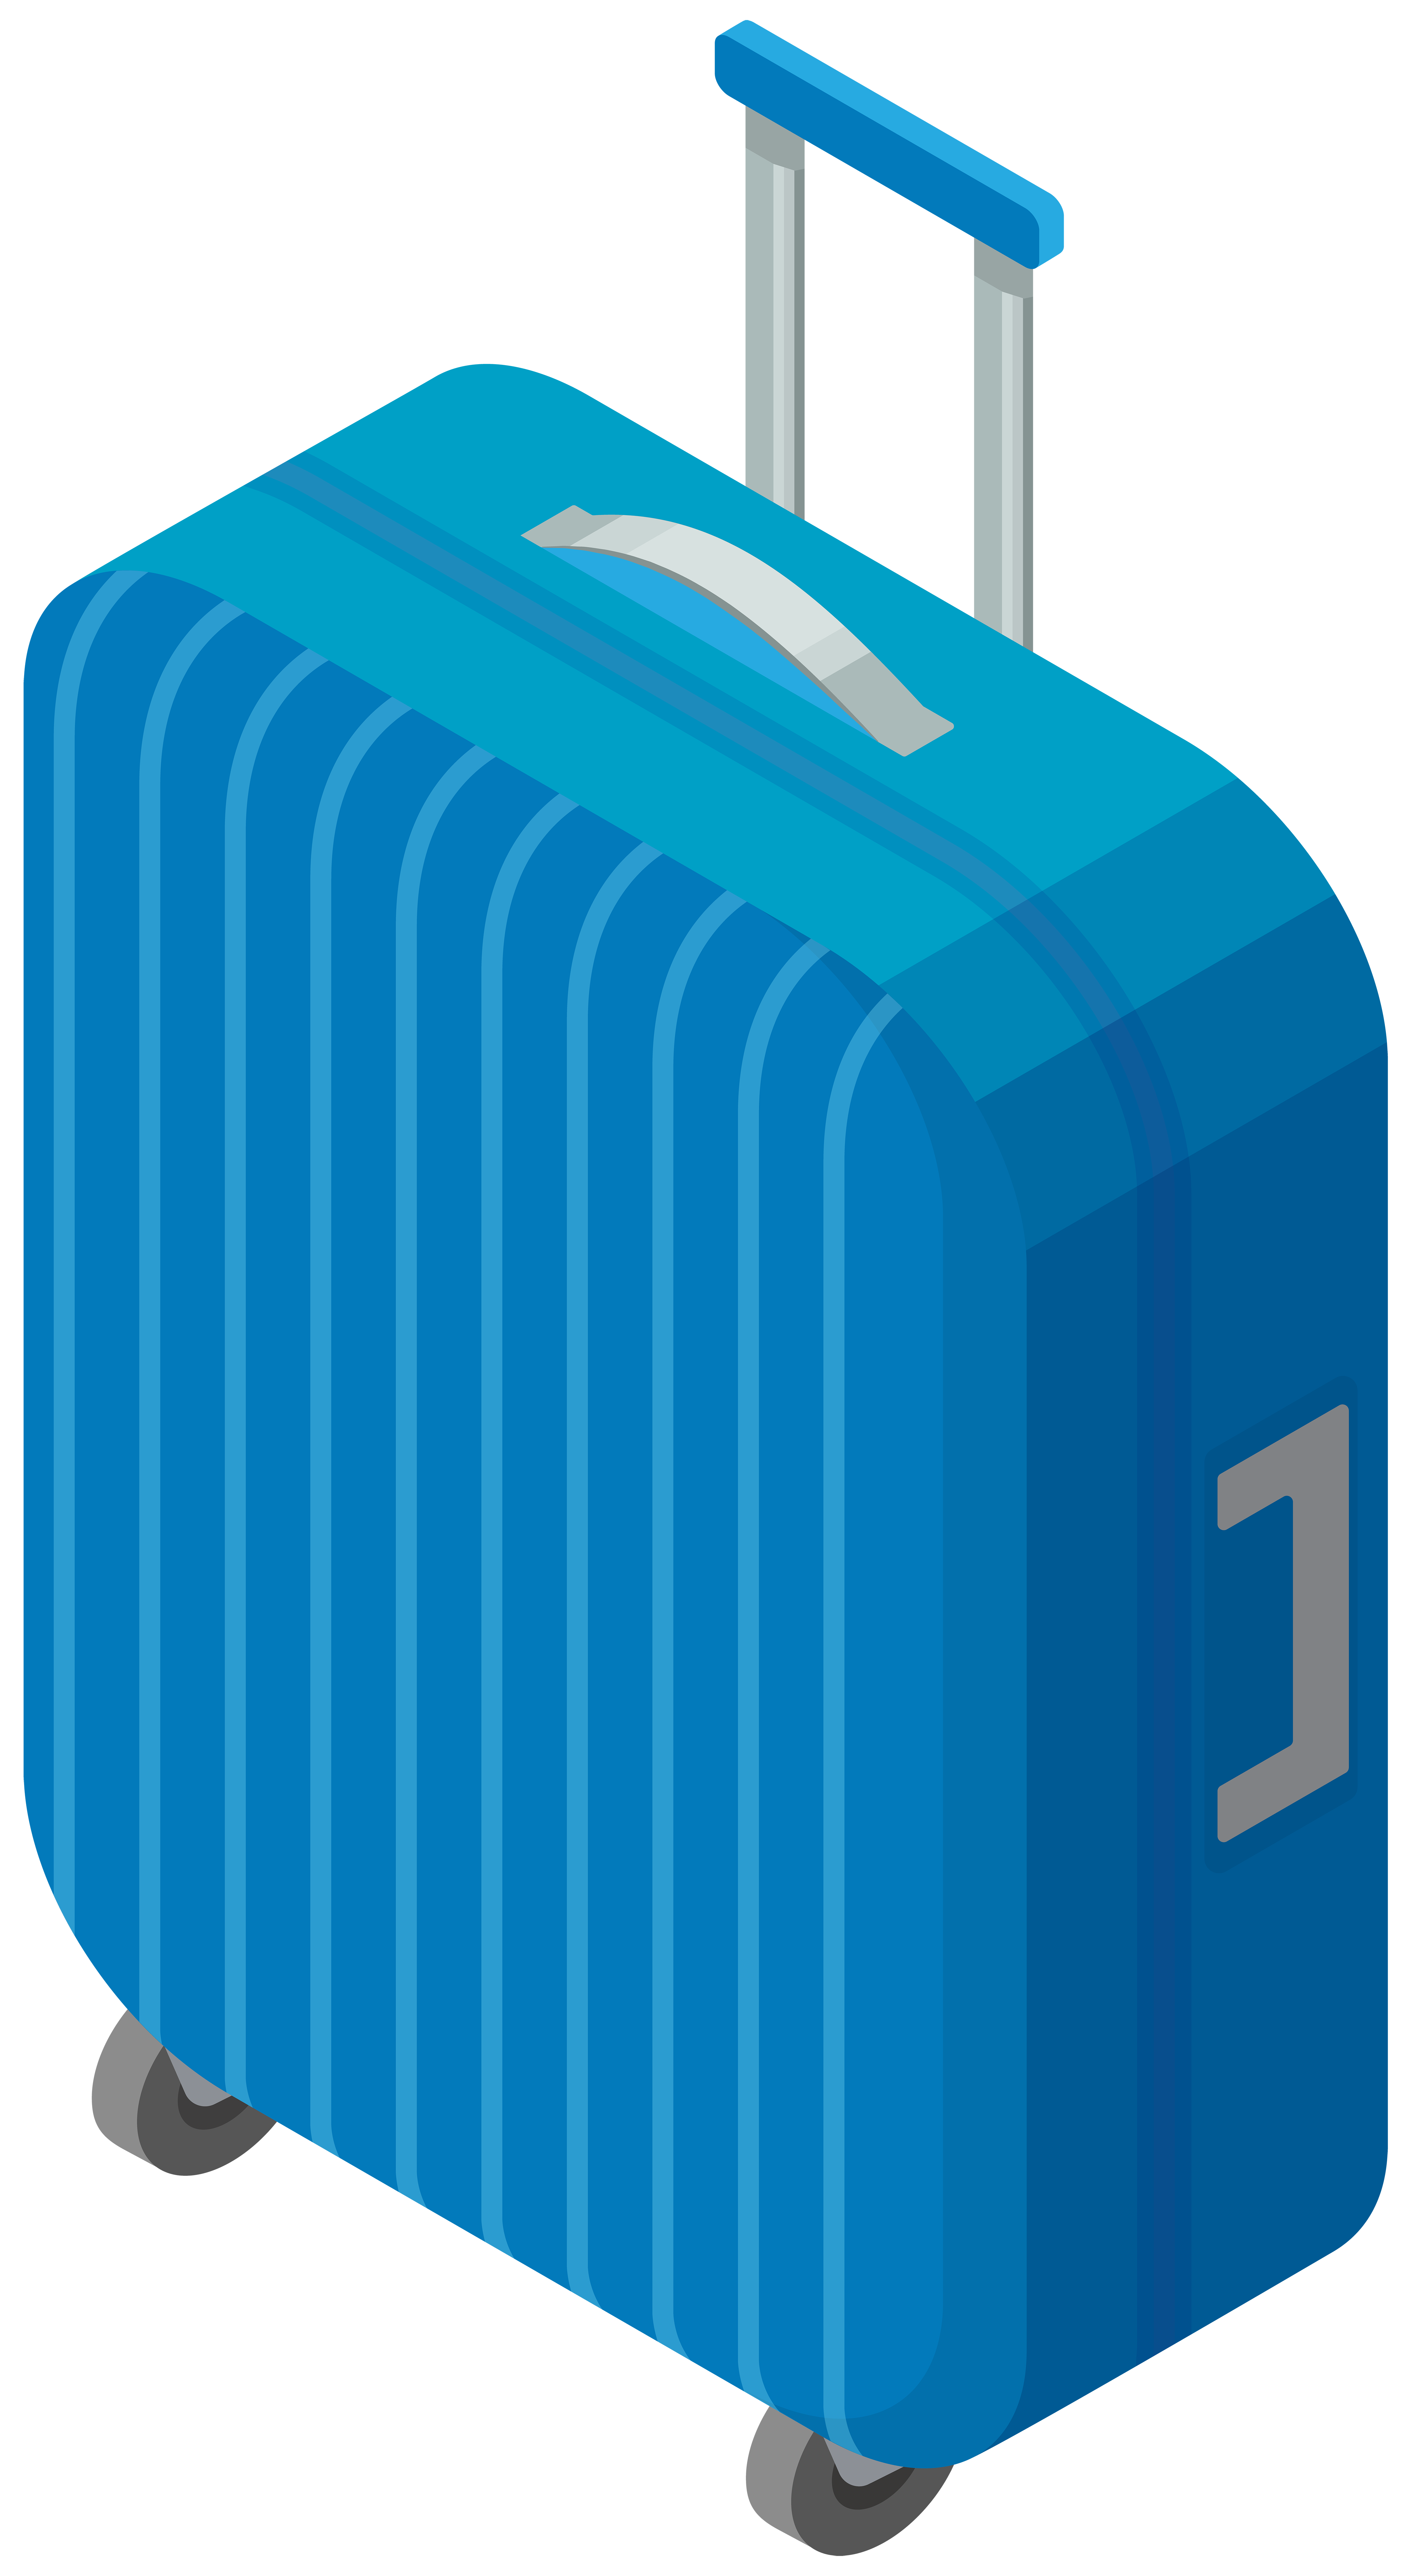 Trolley Bag Transparent Clip Art Image | Gallery Yopriceville ...